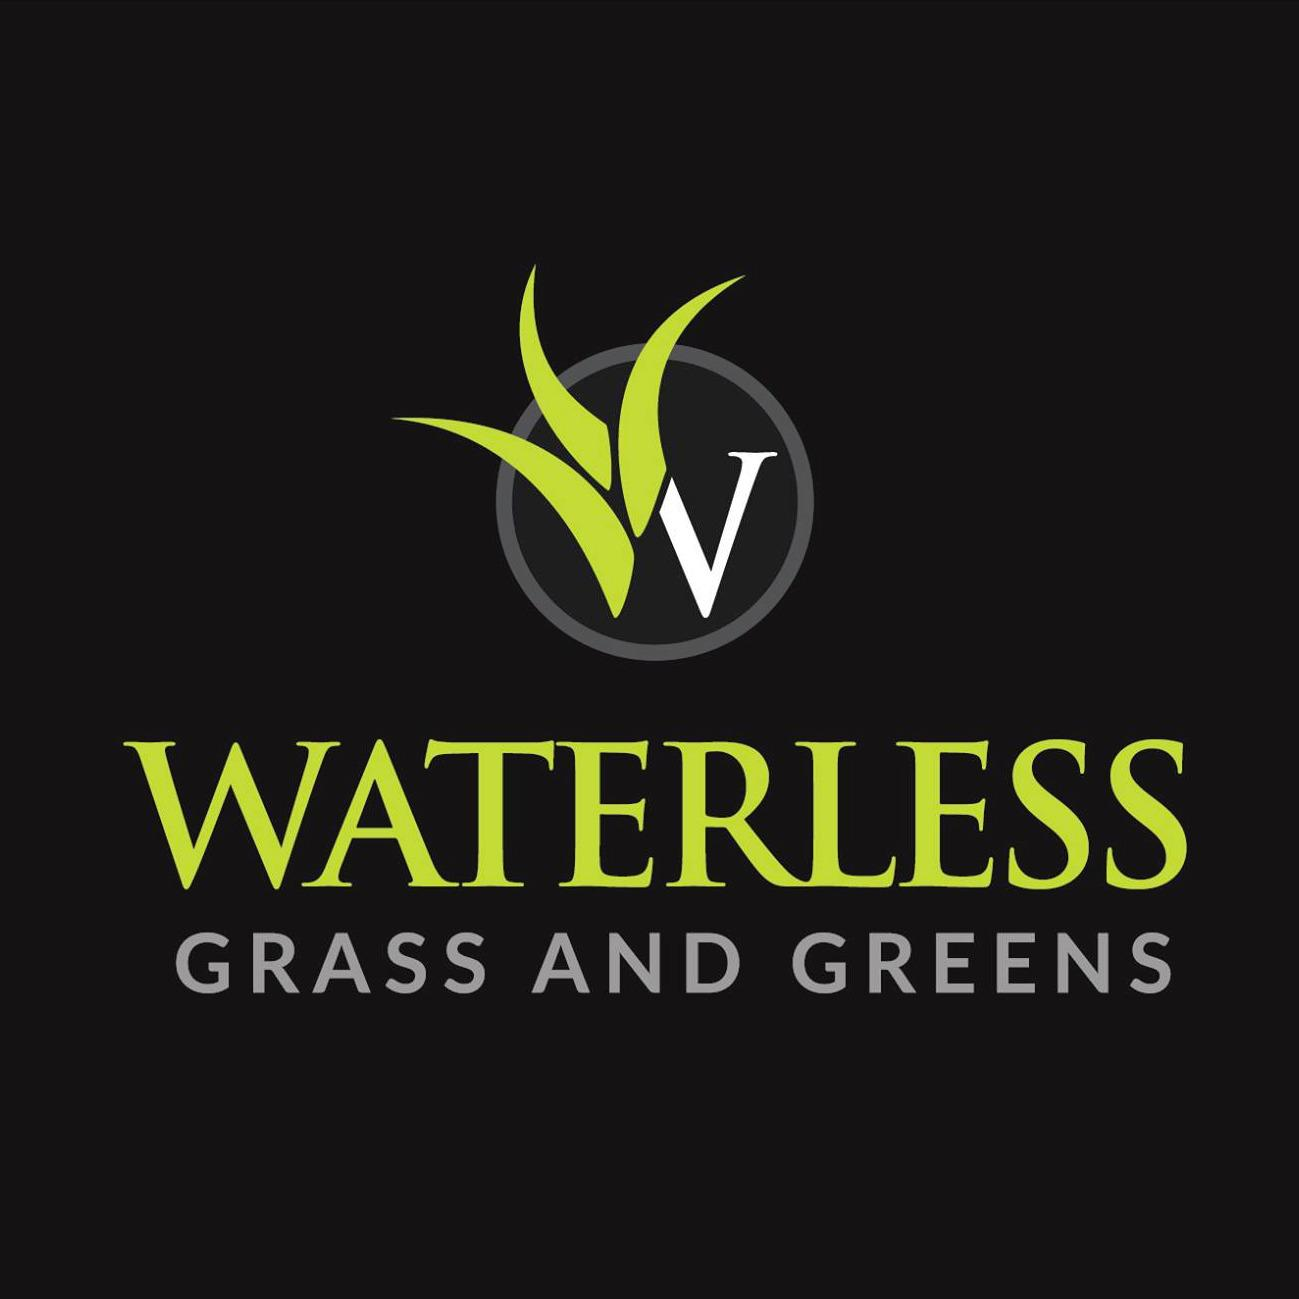 Waterless Grass and Greens image 11